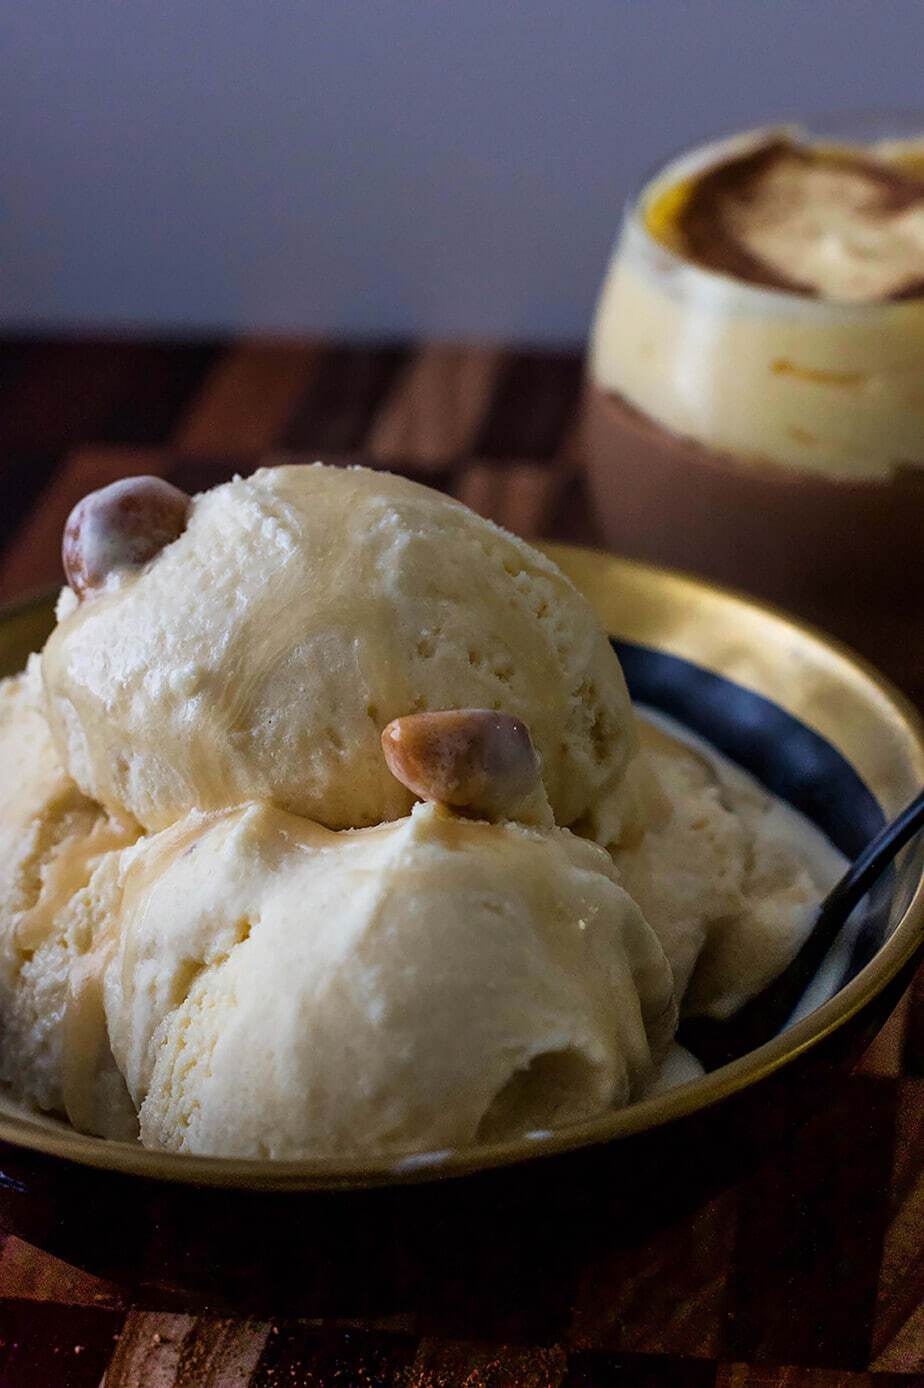 Lush Macadamia Keto Ice Cream – Low Carb